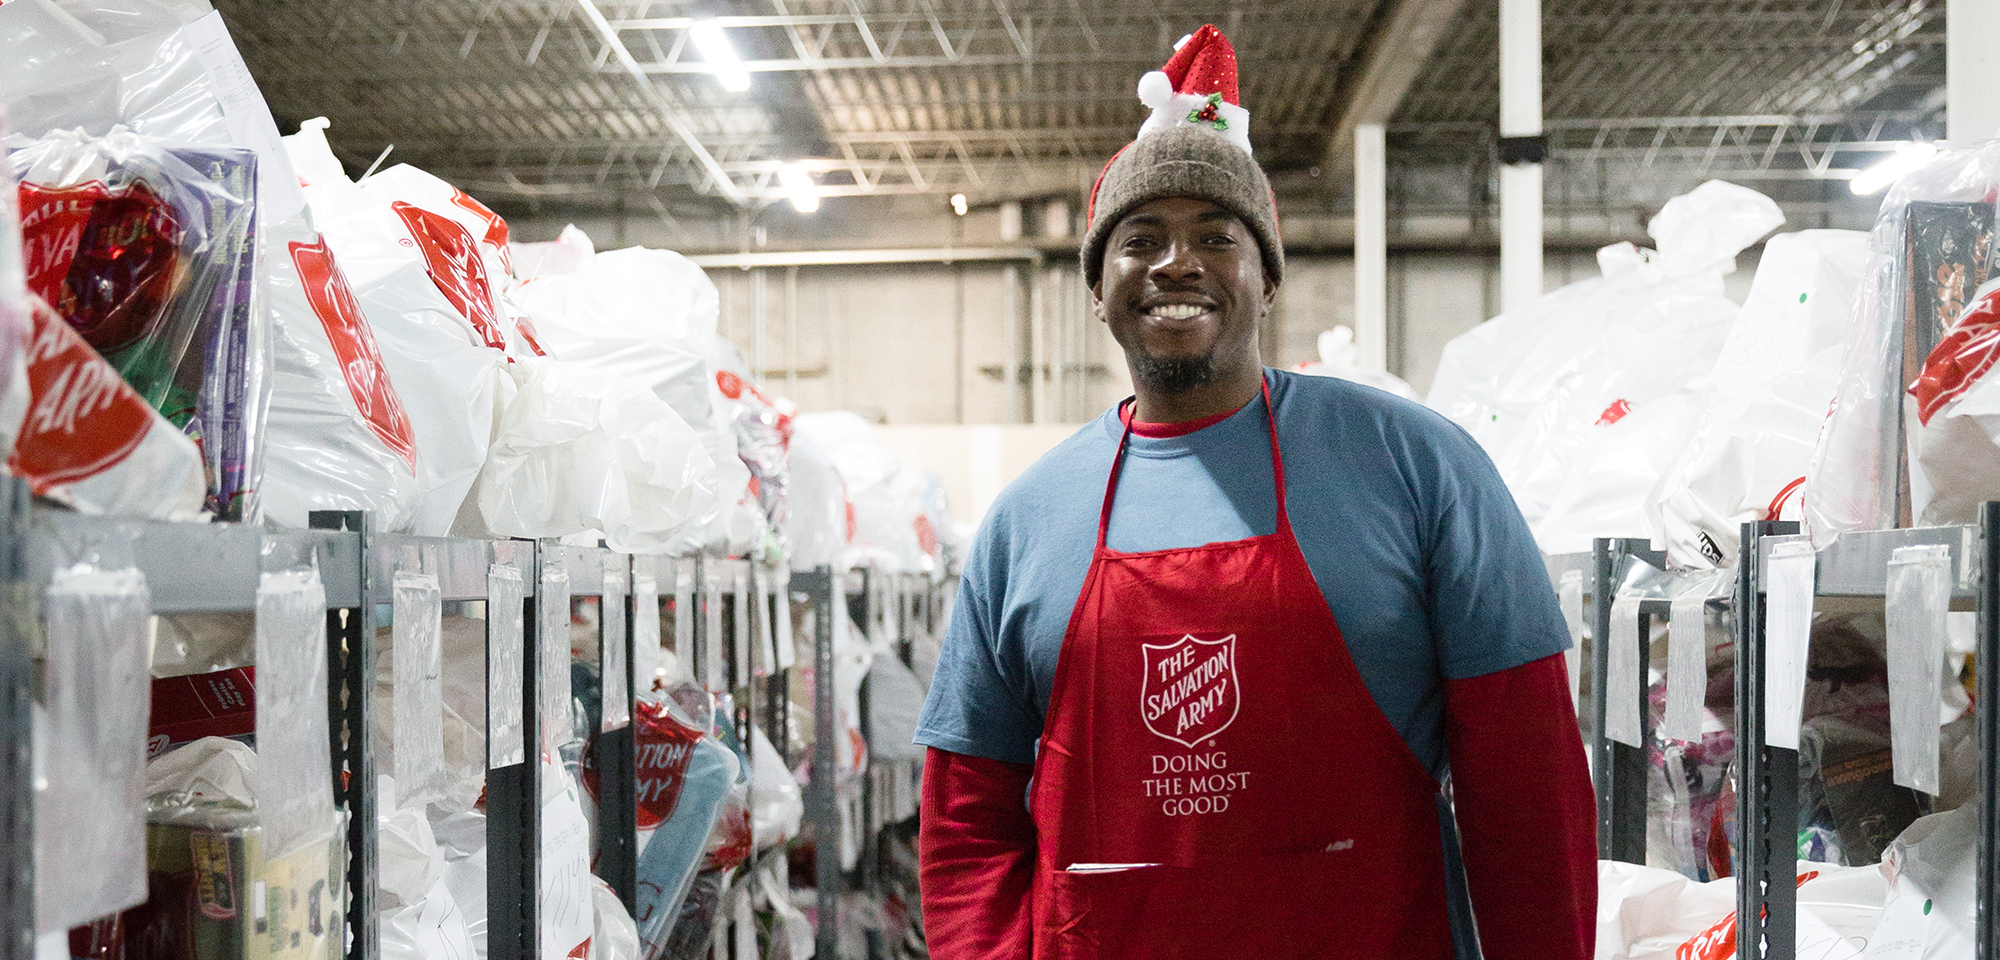 Salvation Army Christmas volunteer